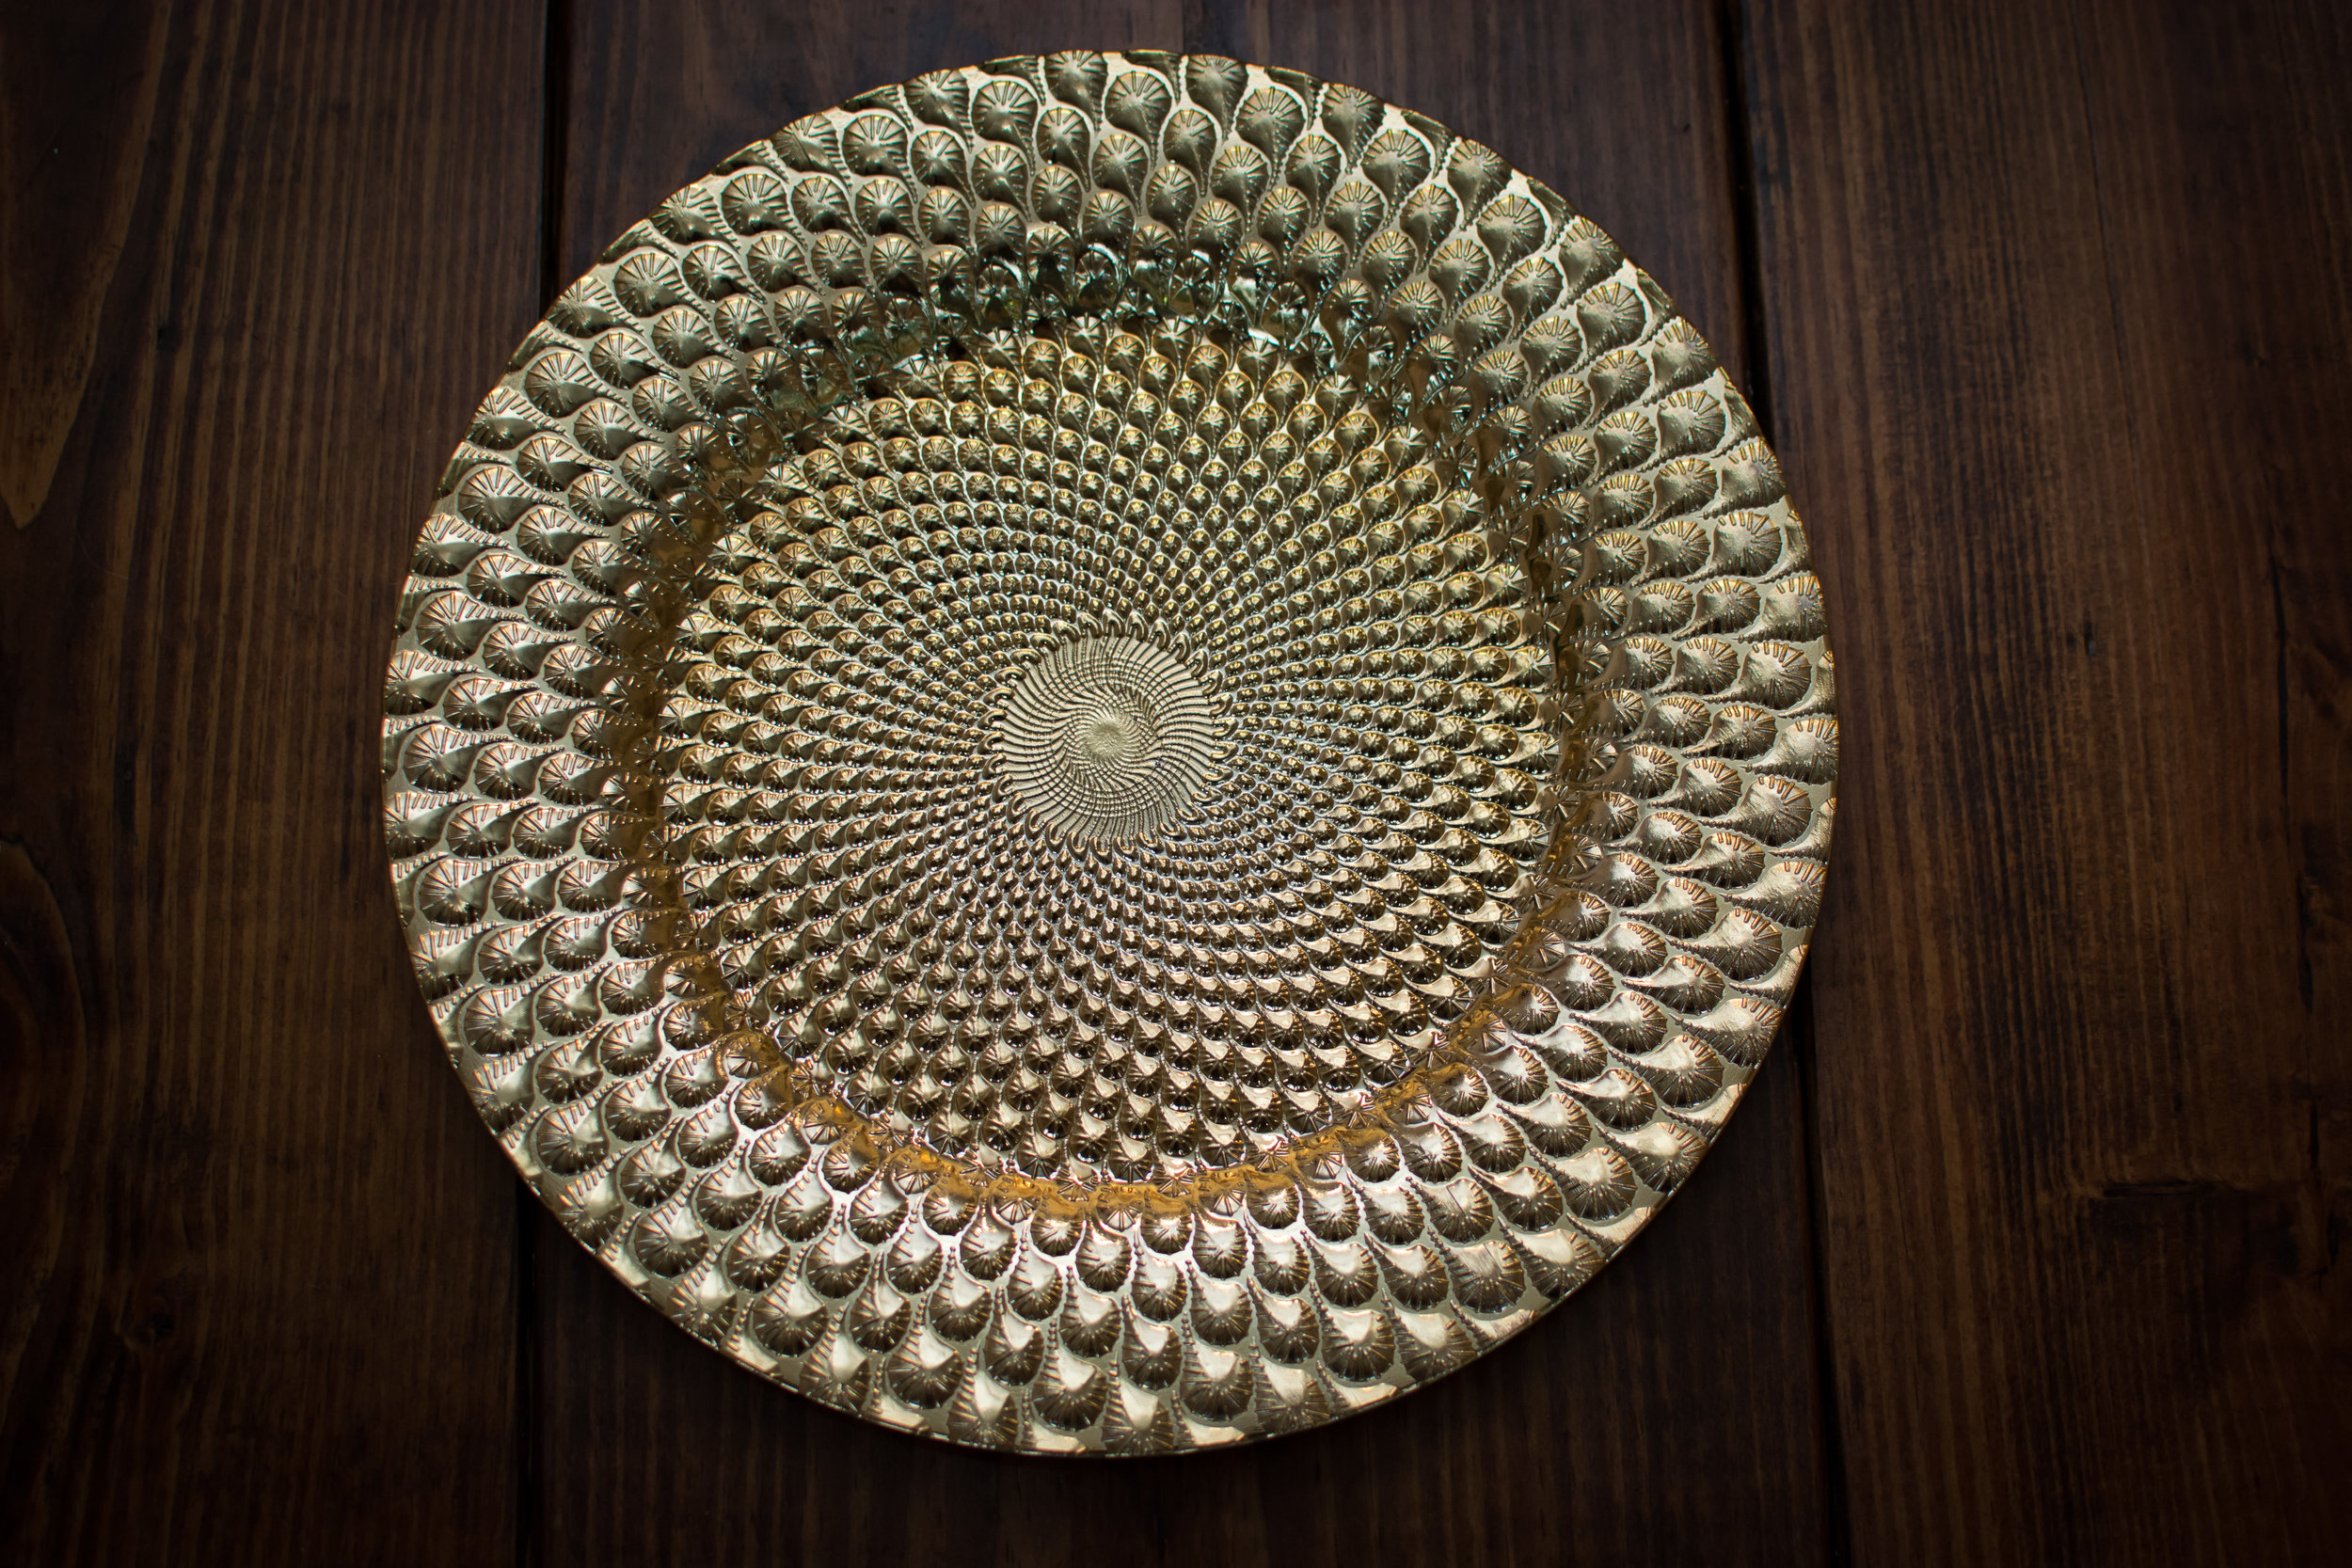 gold peacock charger plate   Material: acrylic  $1.75 Per Plate  Inquire about quantity and availability